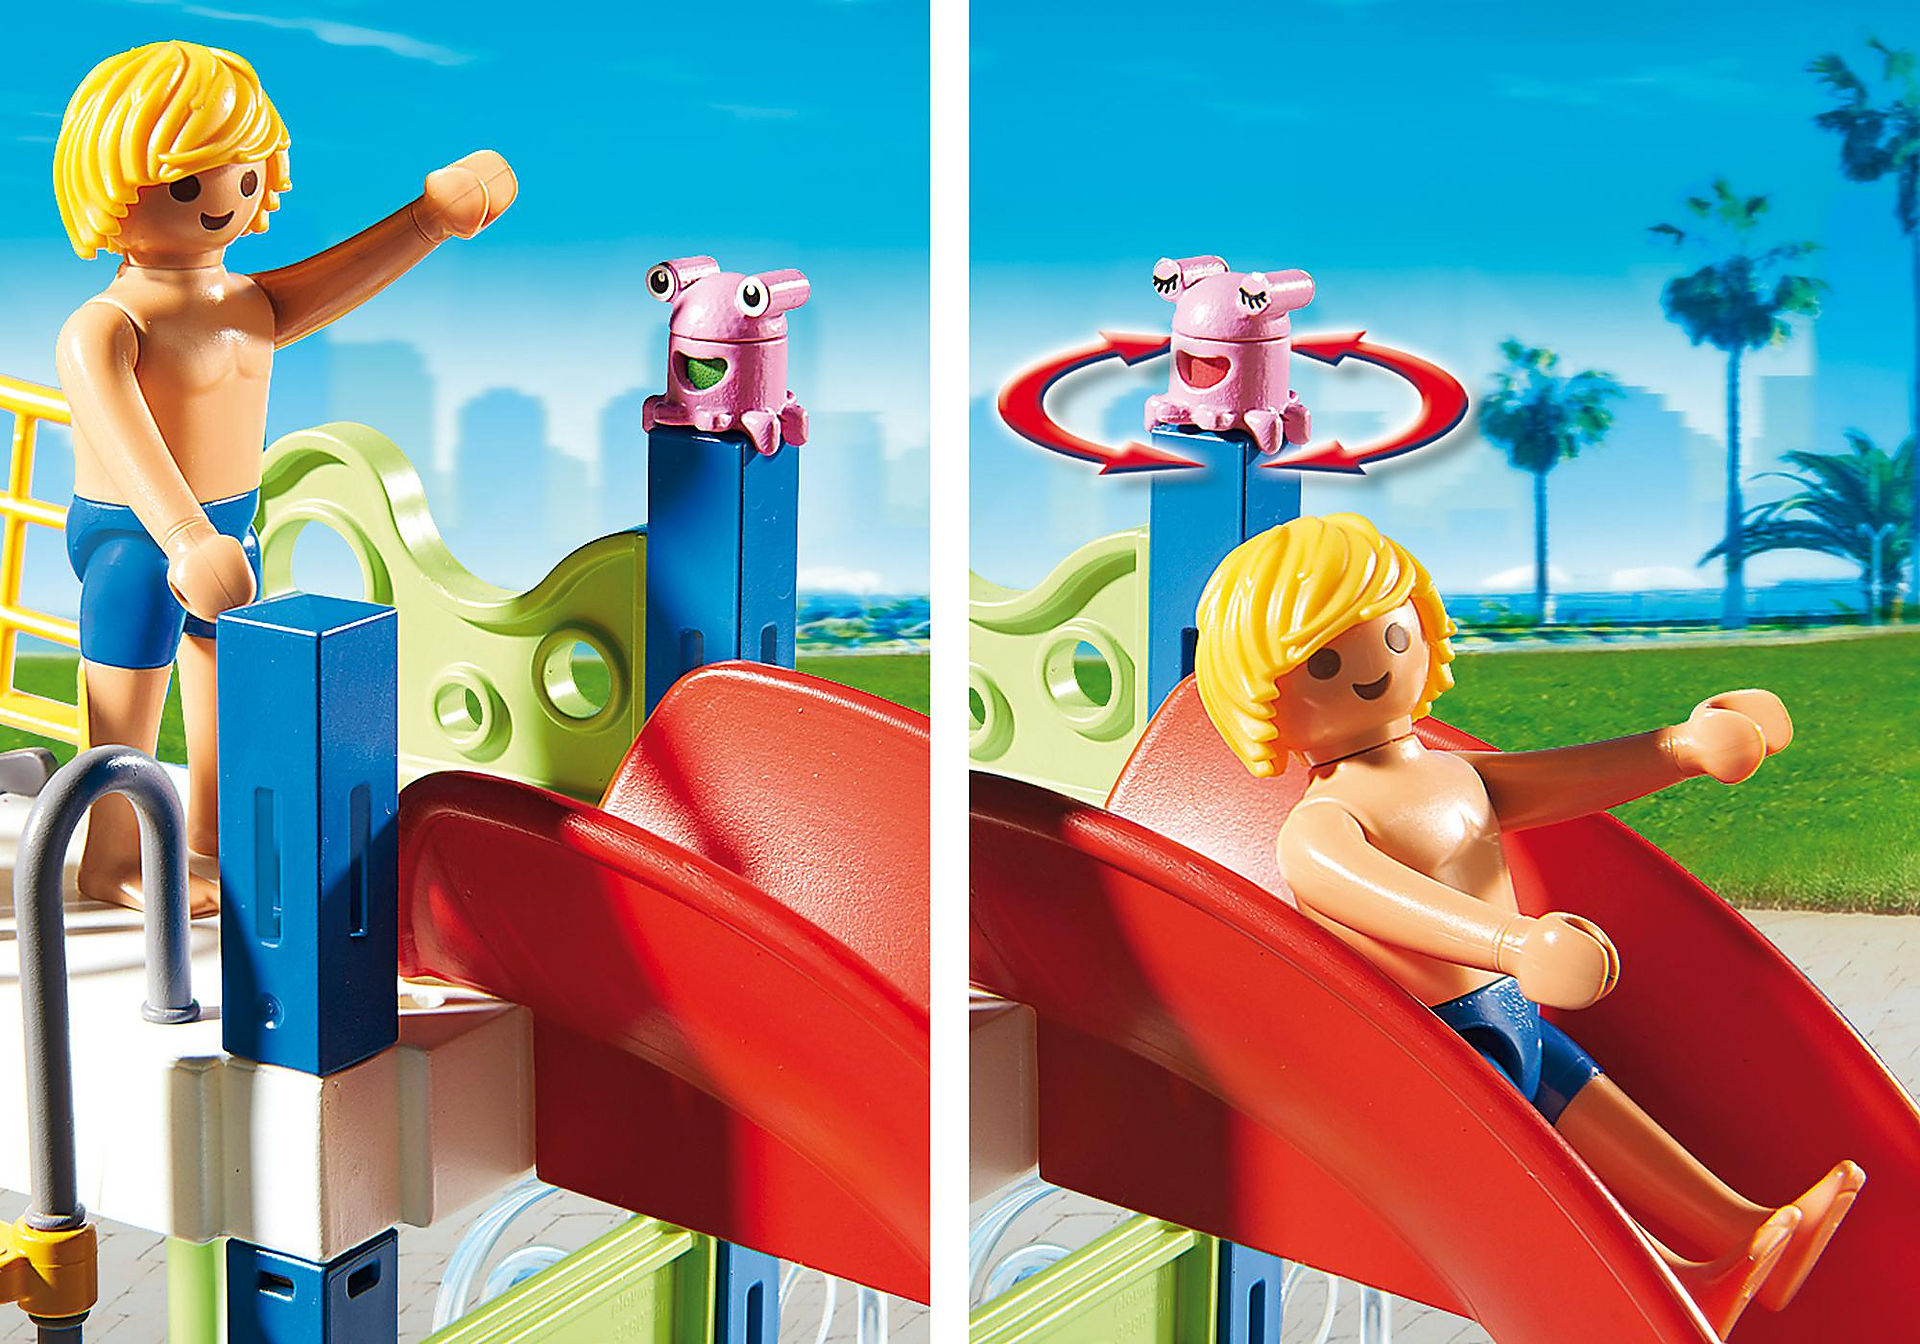 http://media.playmobil.com/i/playmobil/6670_product_extra2/Water Park Play Area